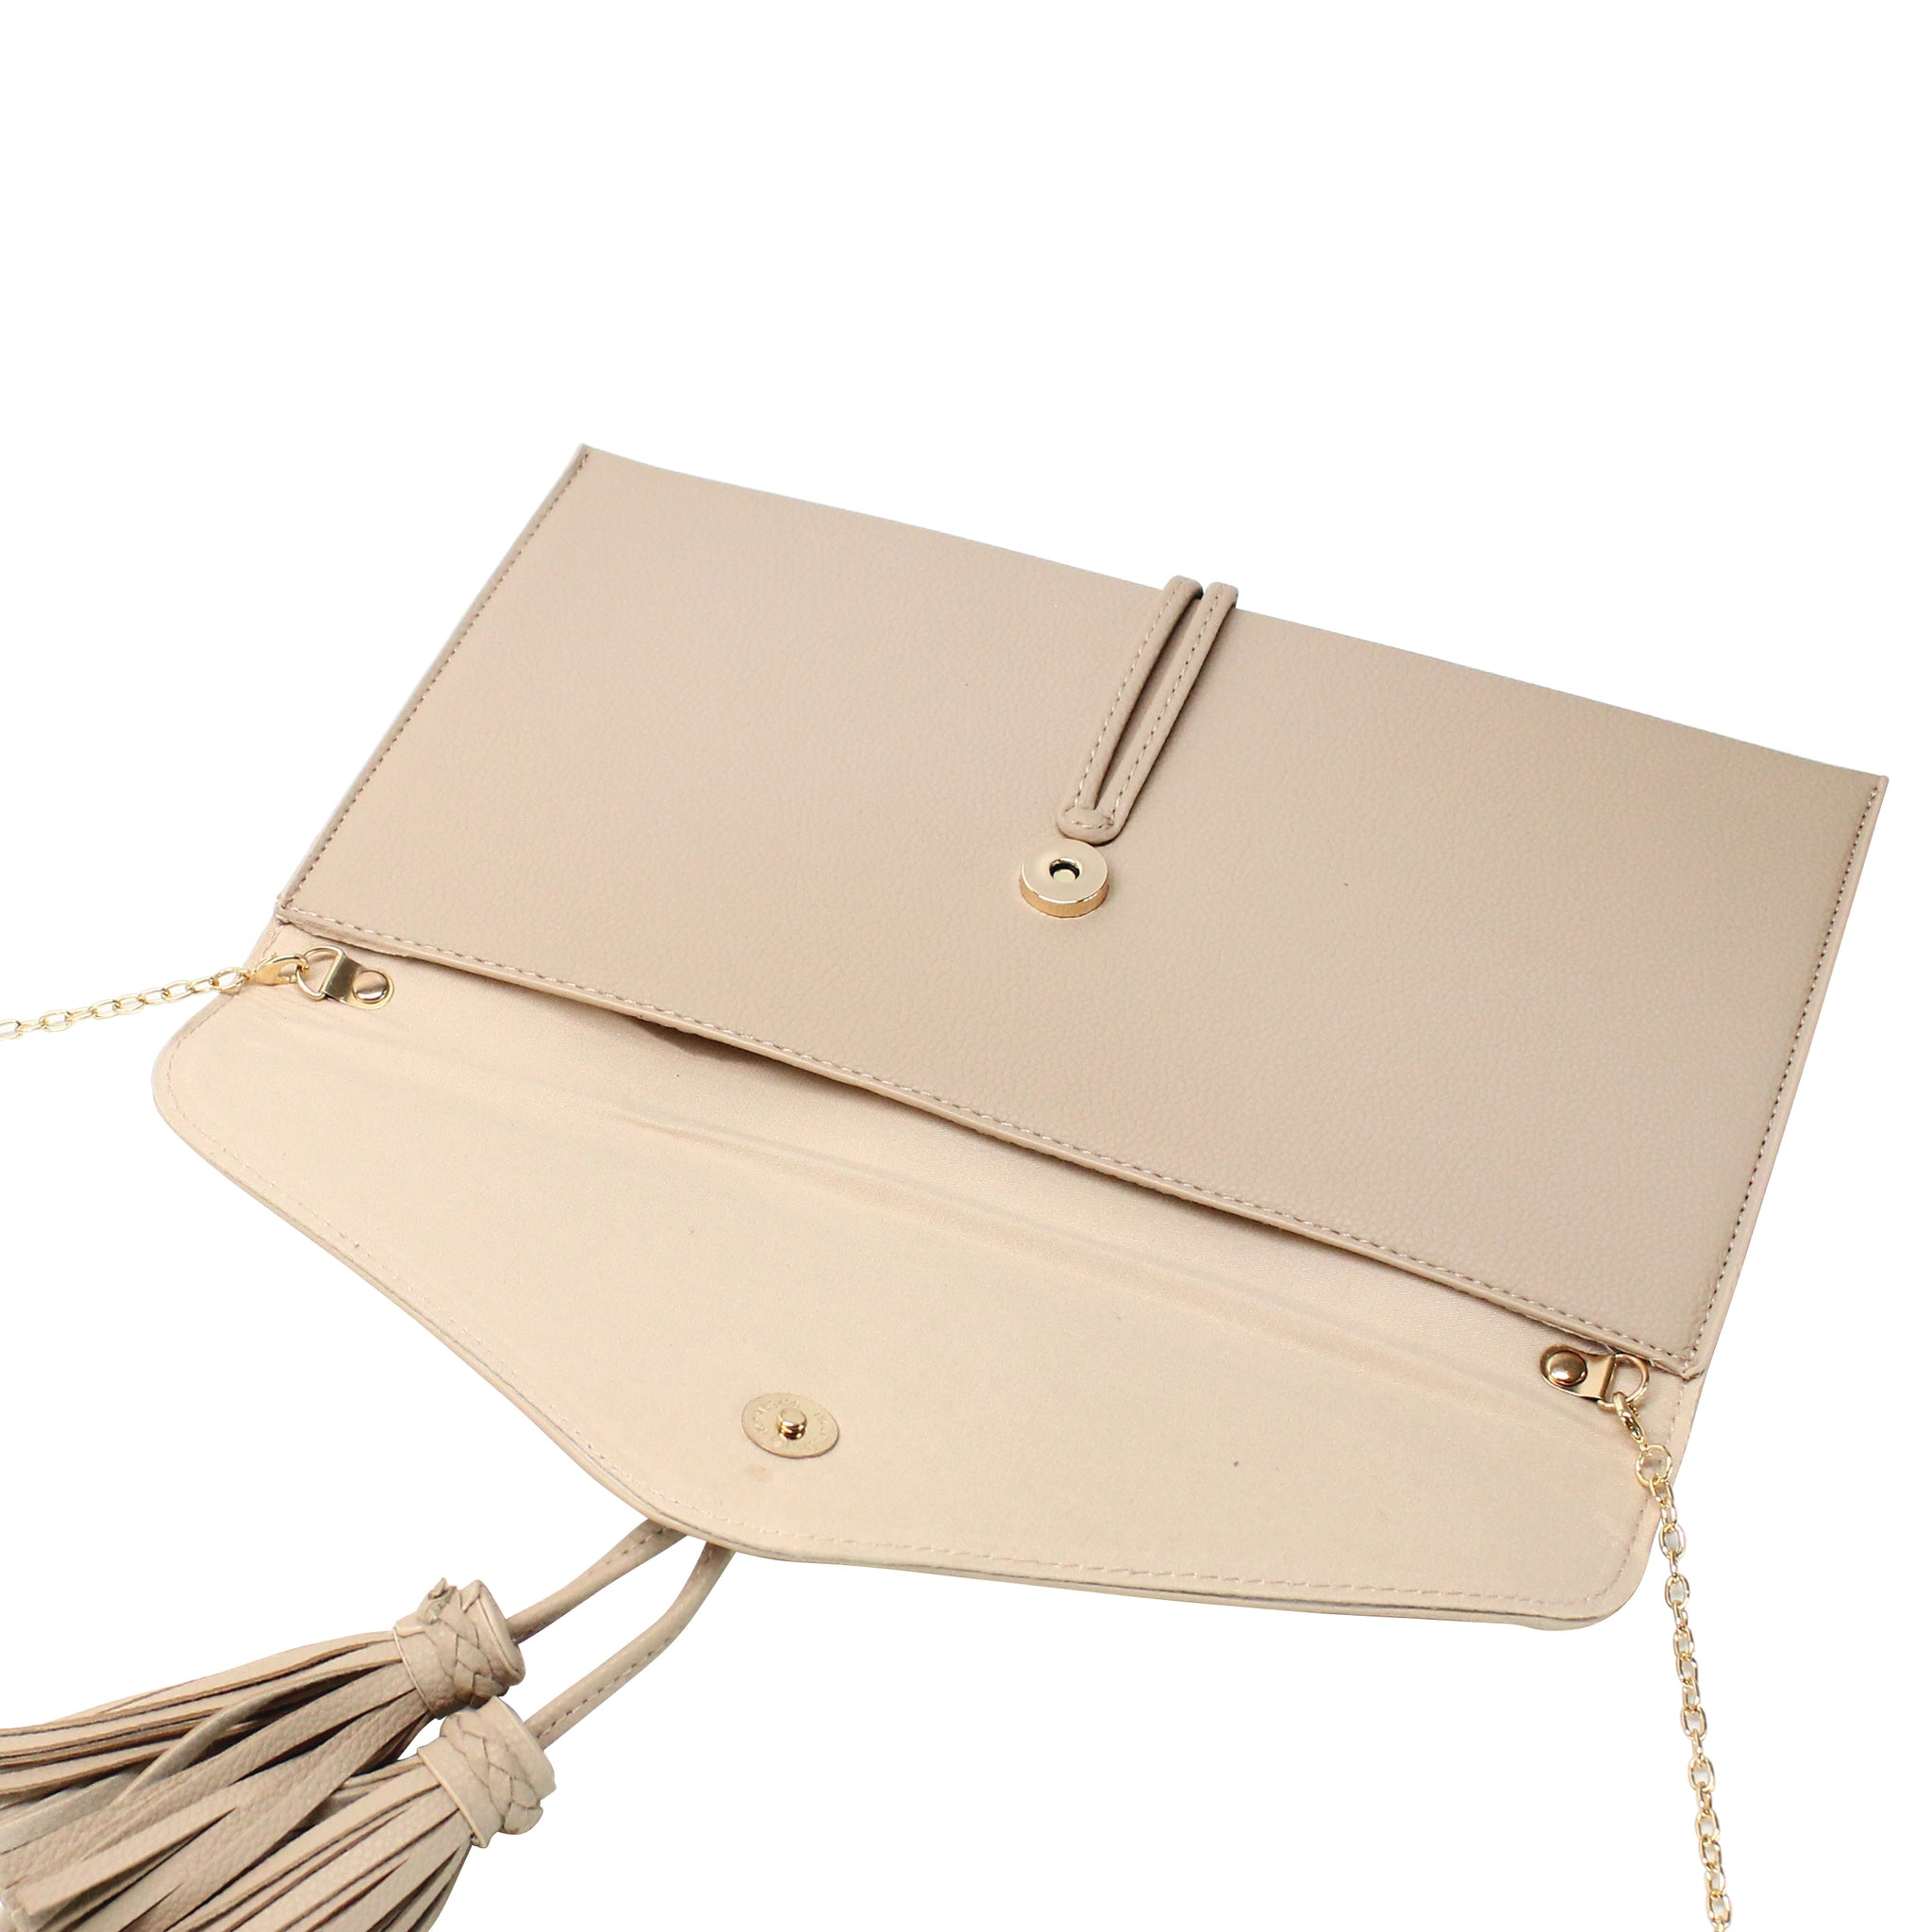 TASSELED ENVELOPE CLUTCH WITH CHAIN STRAP - Jenuine Handbags